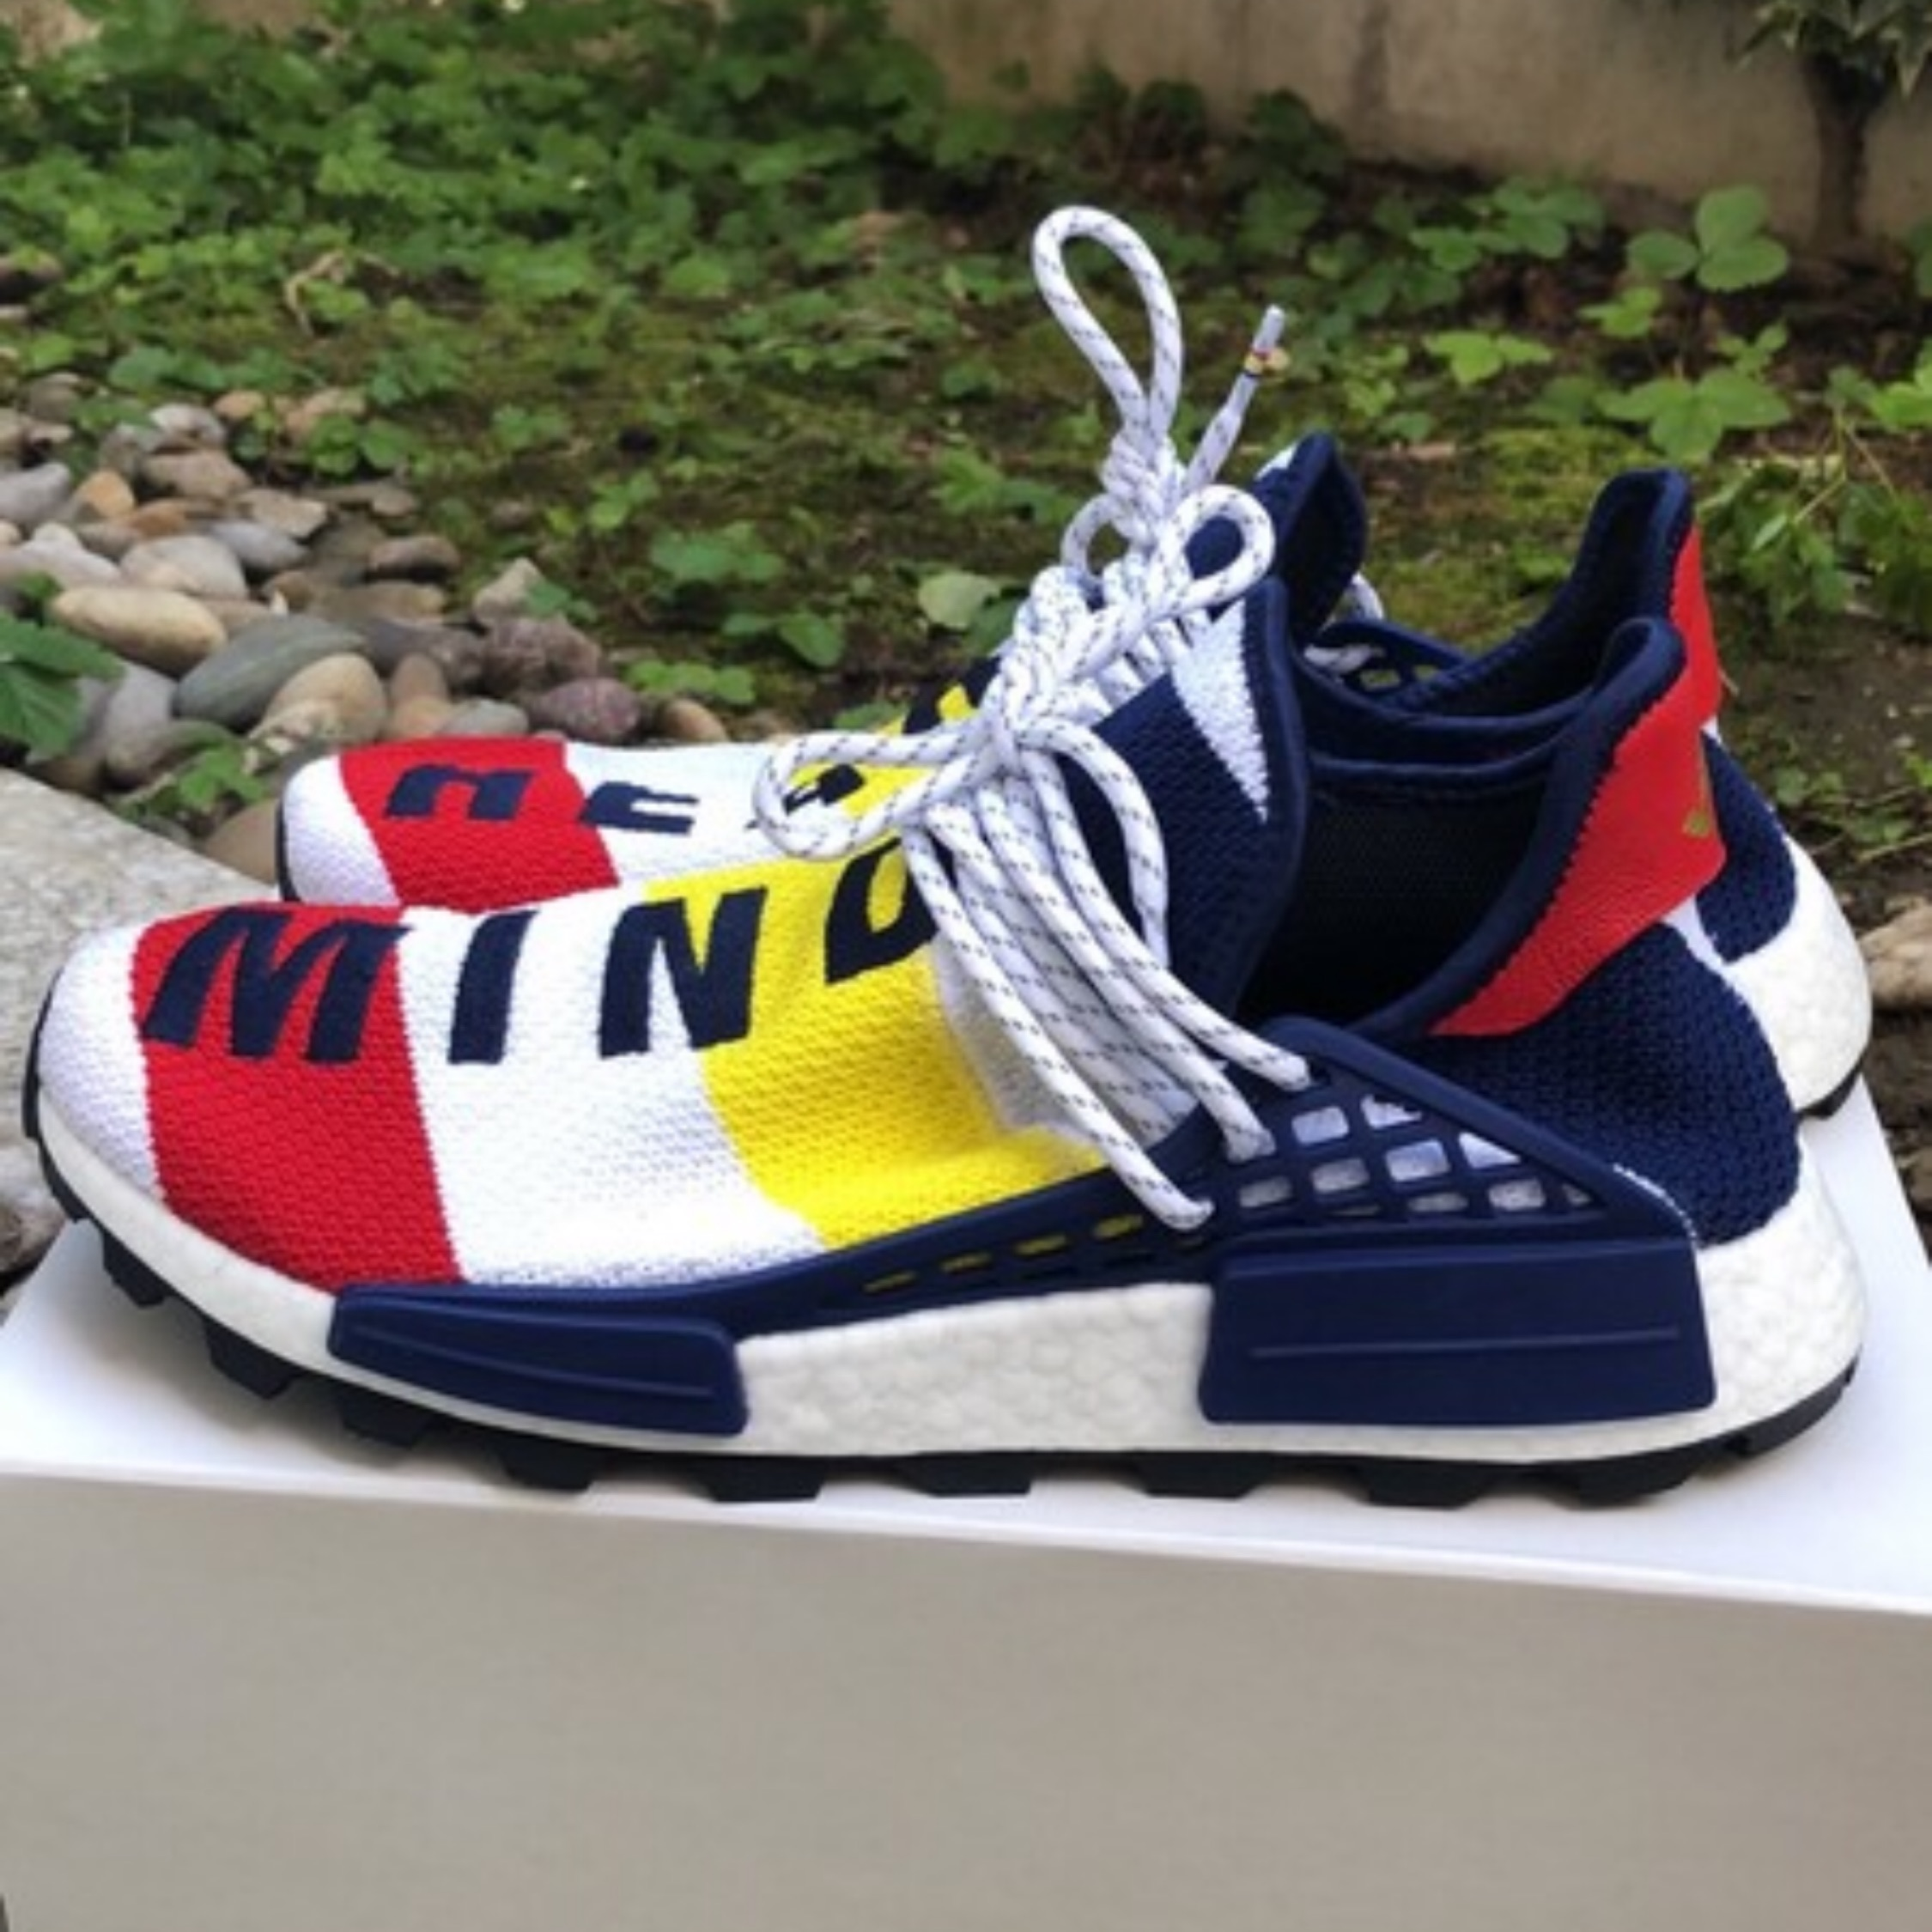 free shipping c0d83 8a4f2 Human Race Nmd Sold